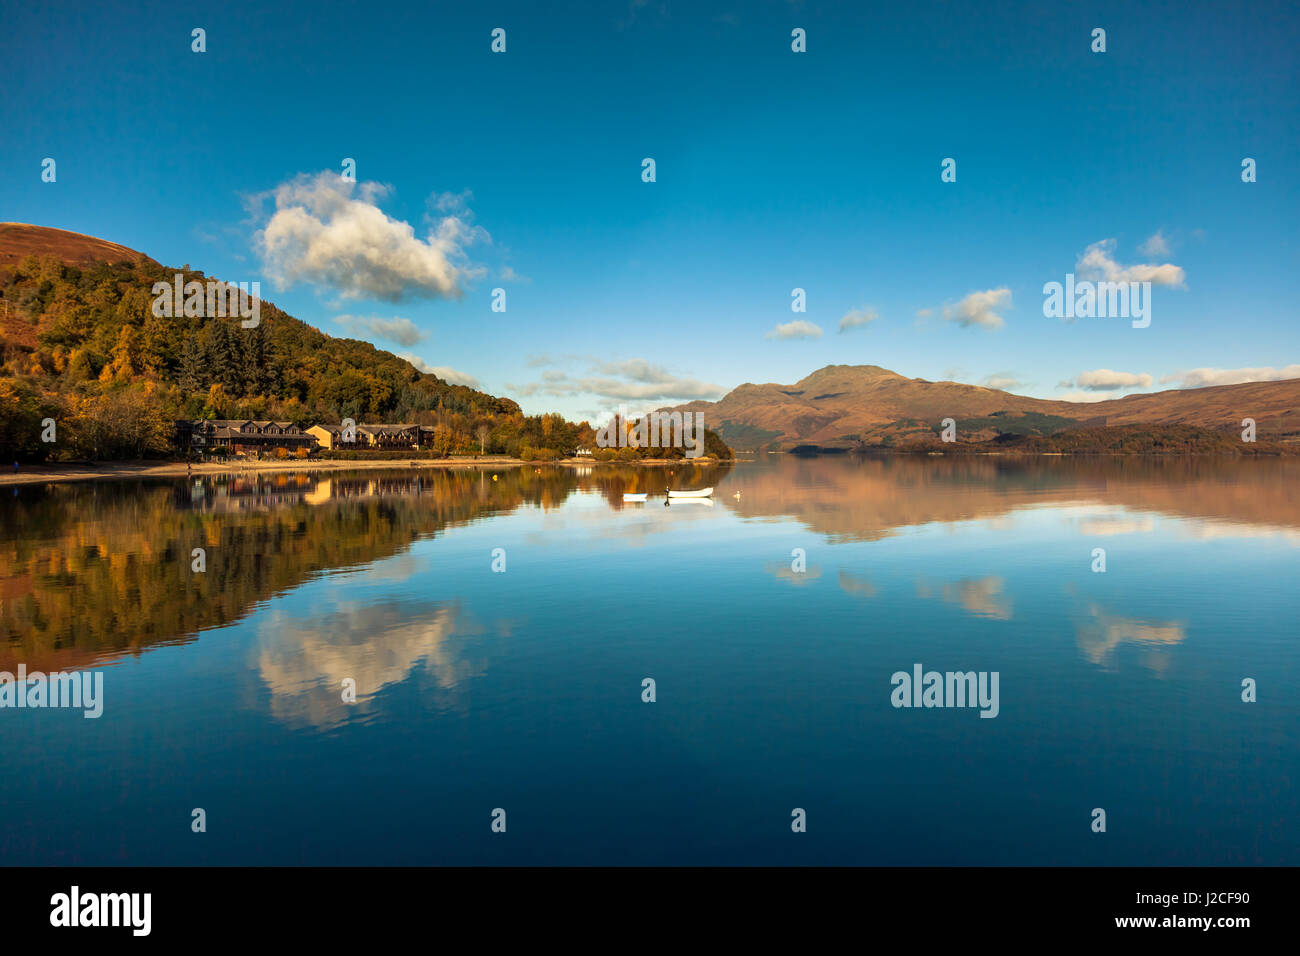 Clouds reflect in the calm waters of Loch Lomond on a clear sunny day. Luss, Scottish Highlands, Scotland. - Stock Image